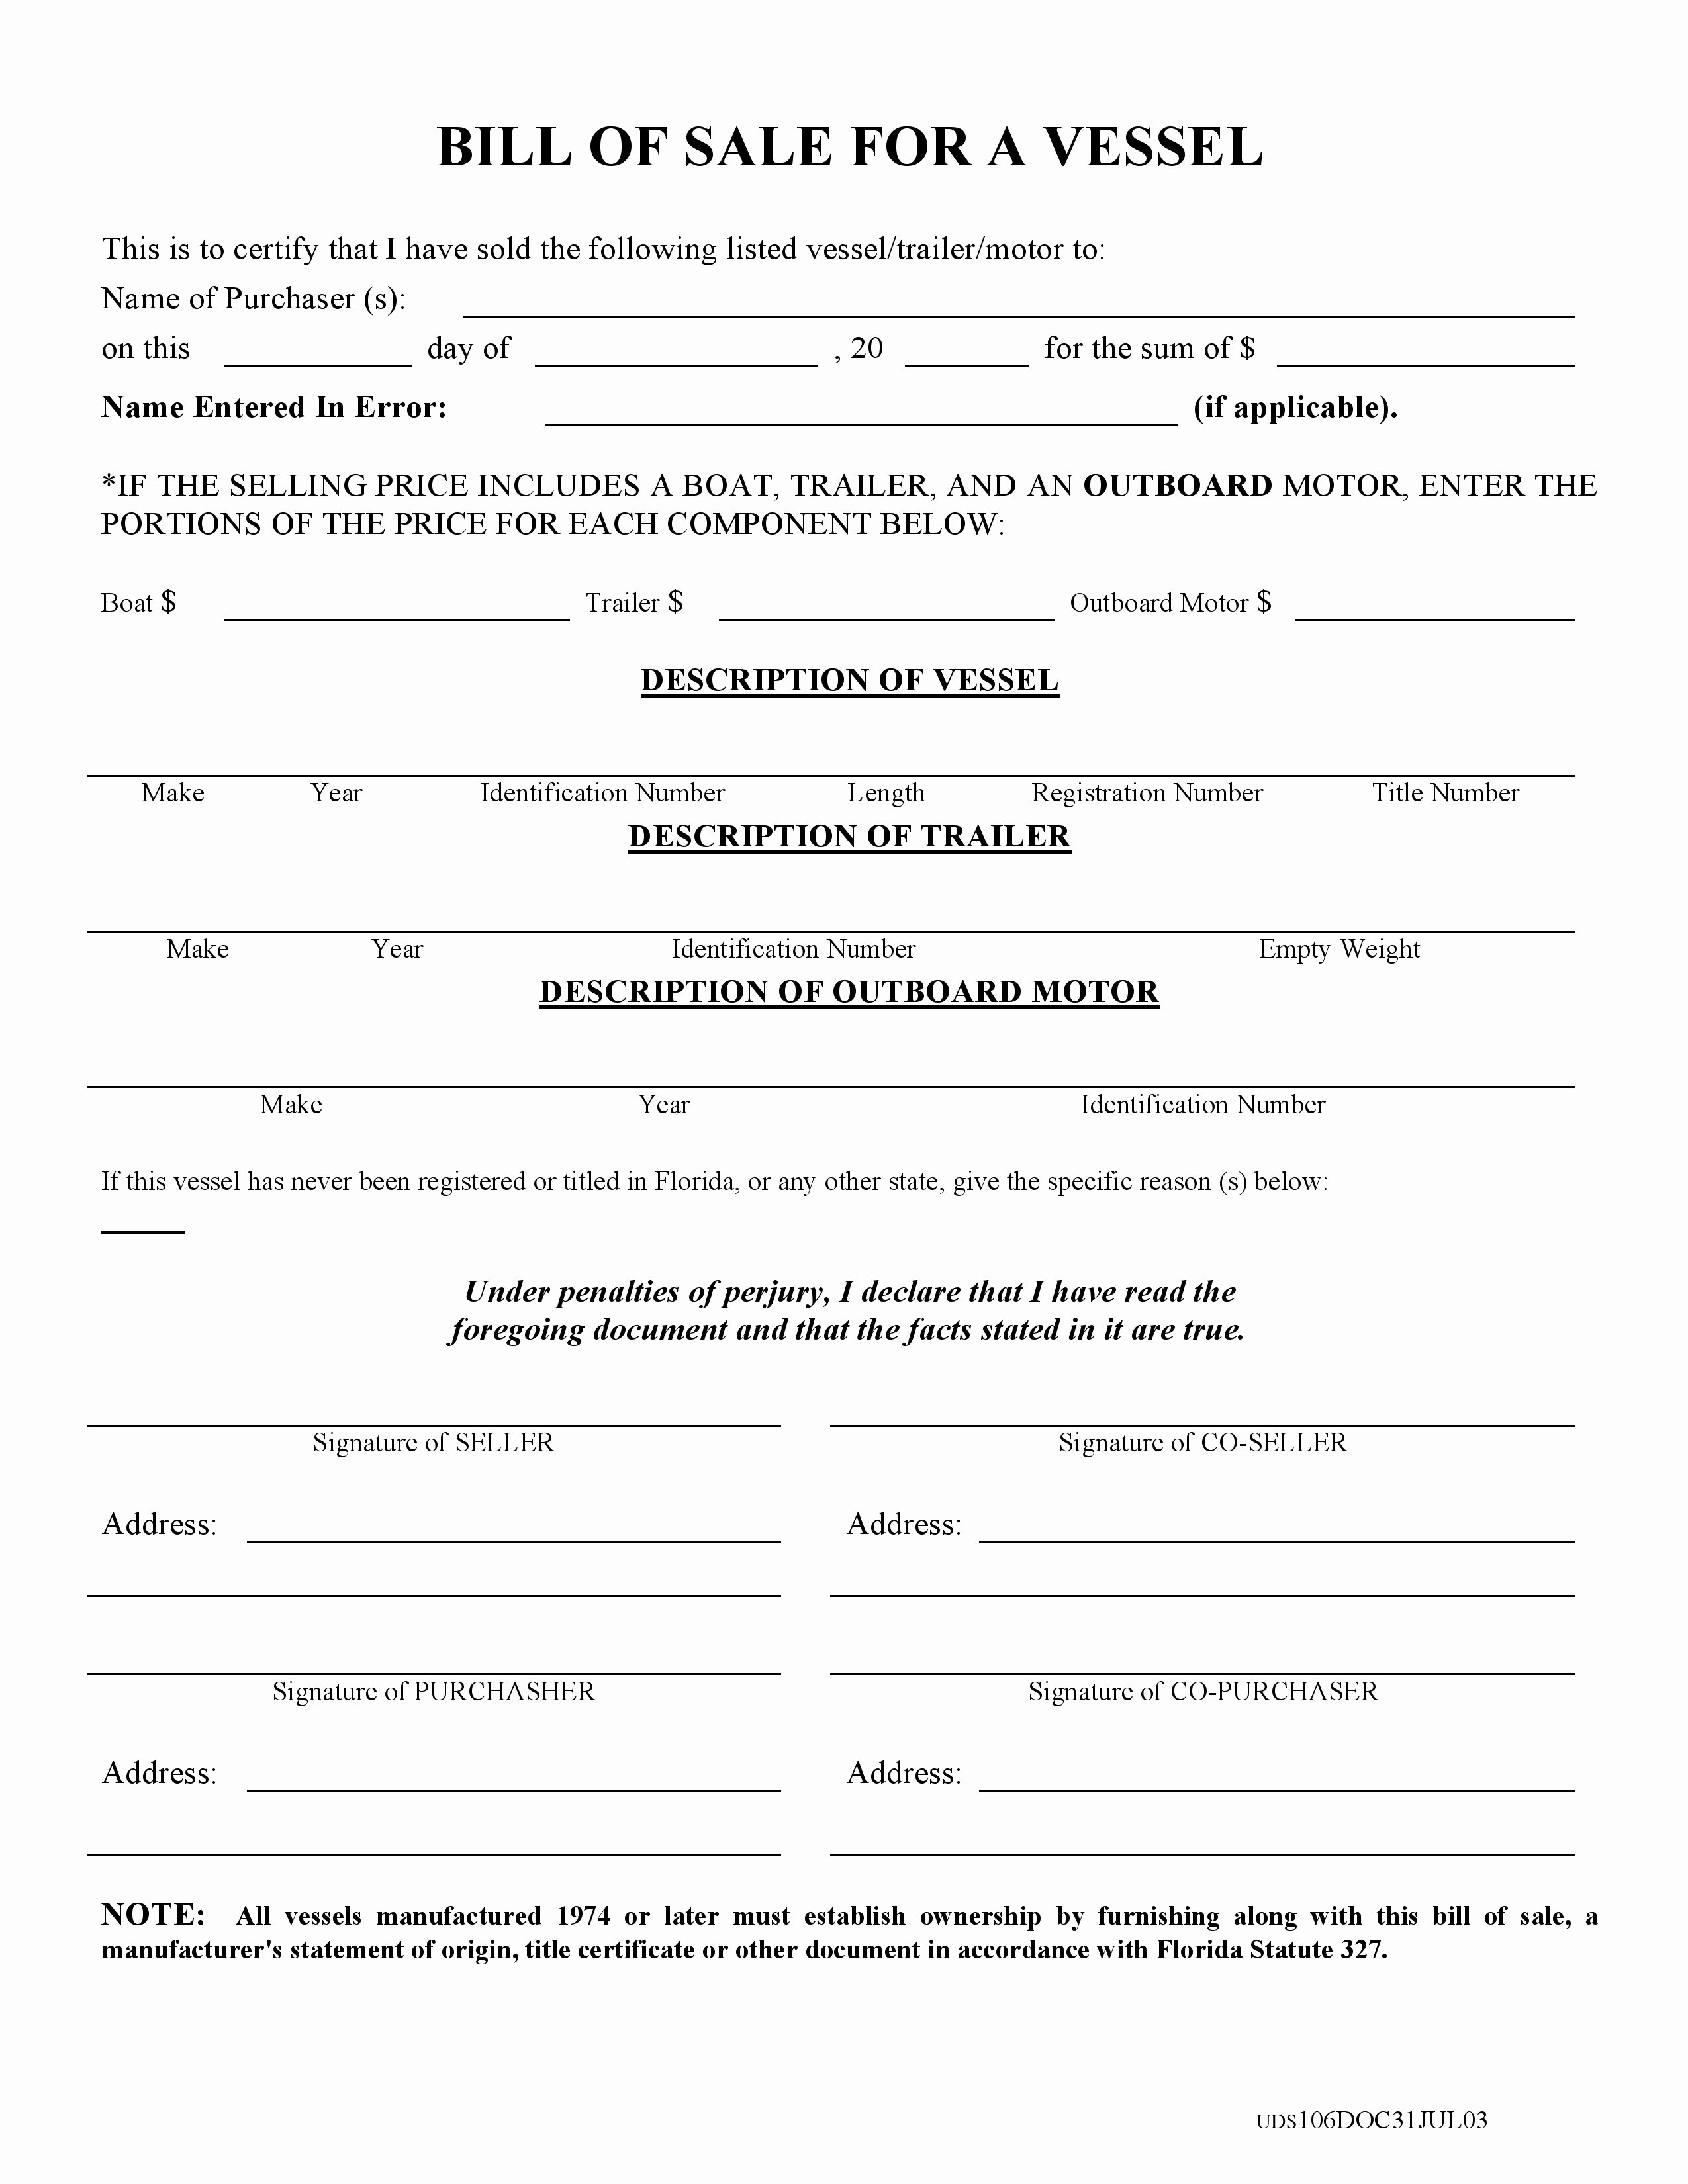 Florida Gun Bill Of Sale Best Of Free Florida Boat Bill Of Sale form Pdf